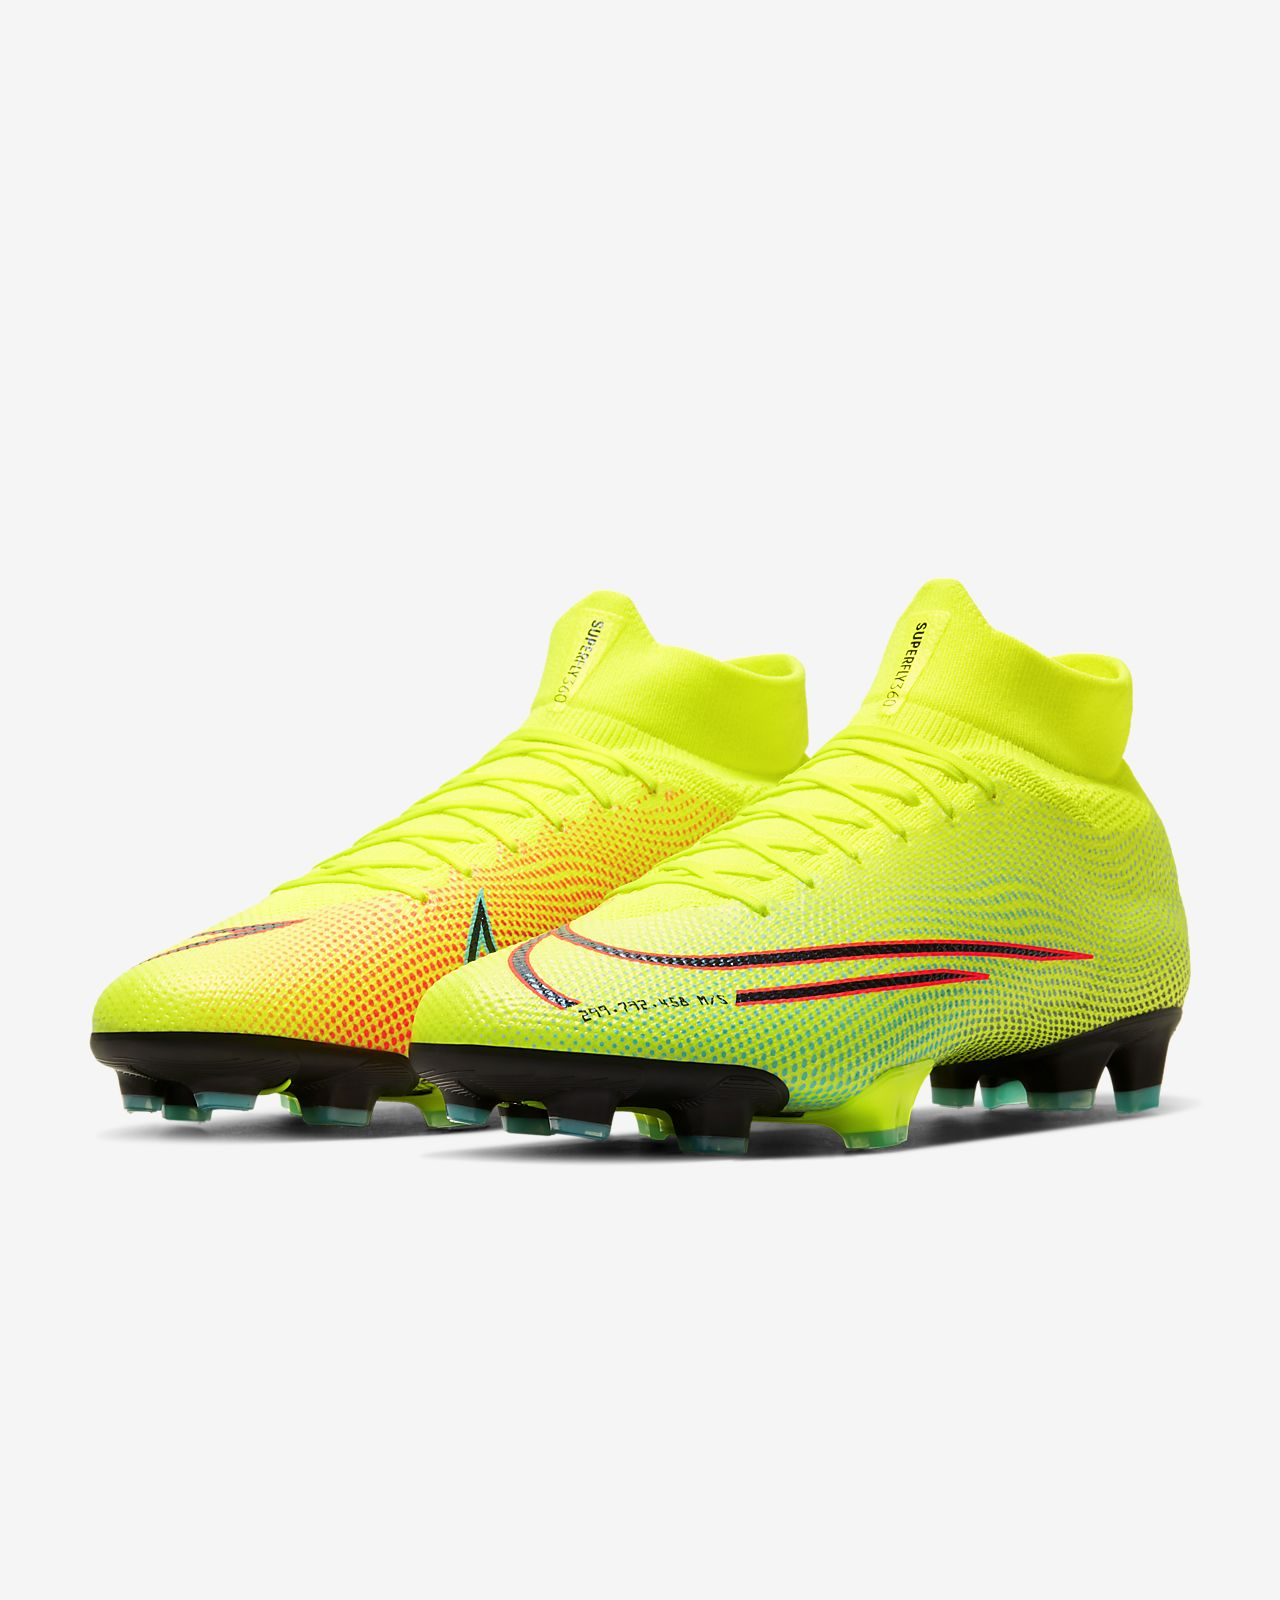 Cheap Nike Superfly 7 Pro, Cheapest Nike Superfly 7 Pro FG Boots